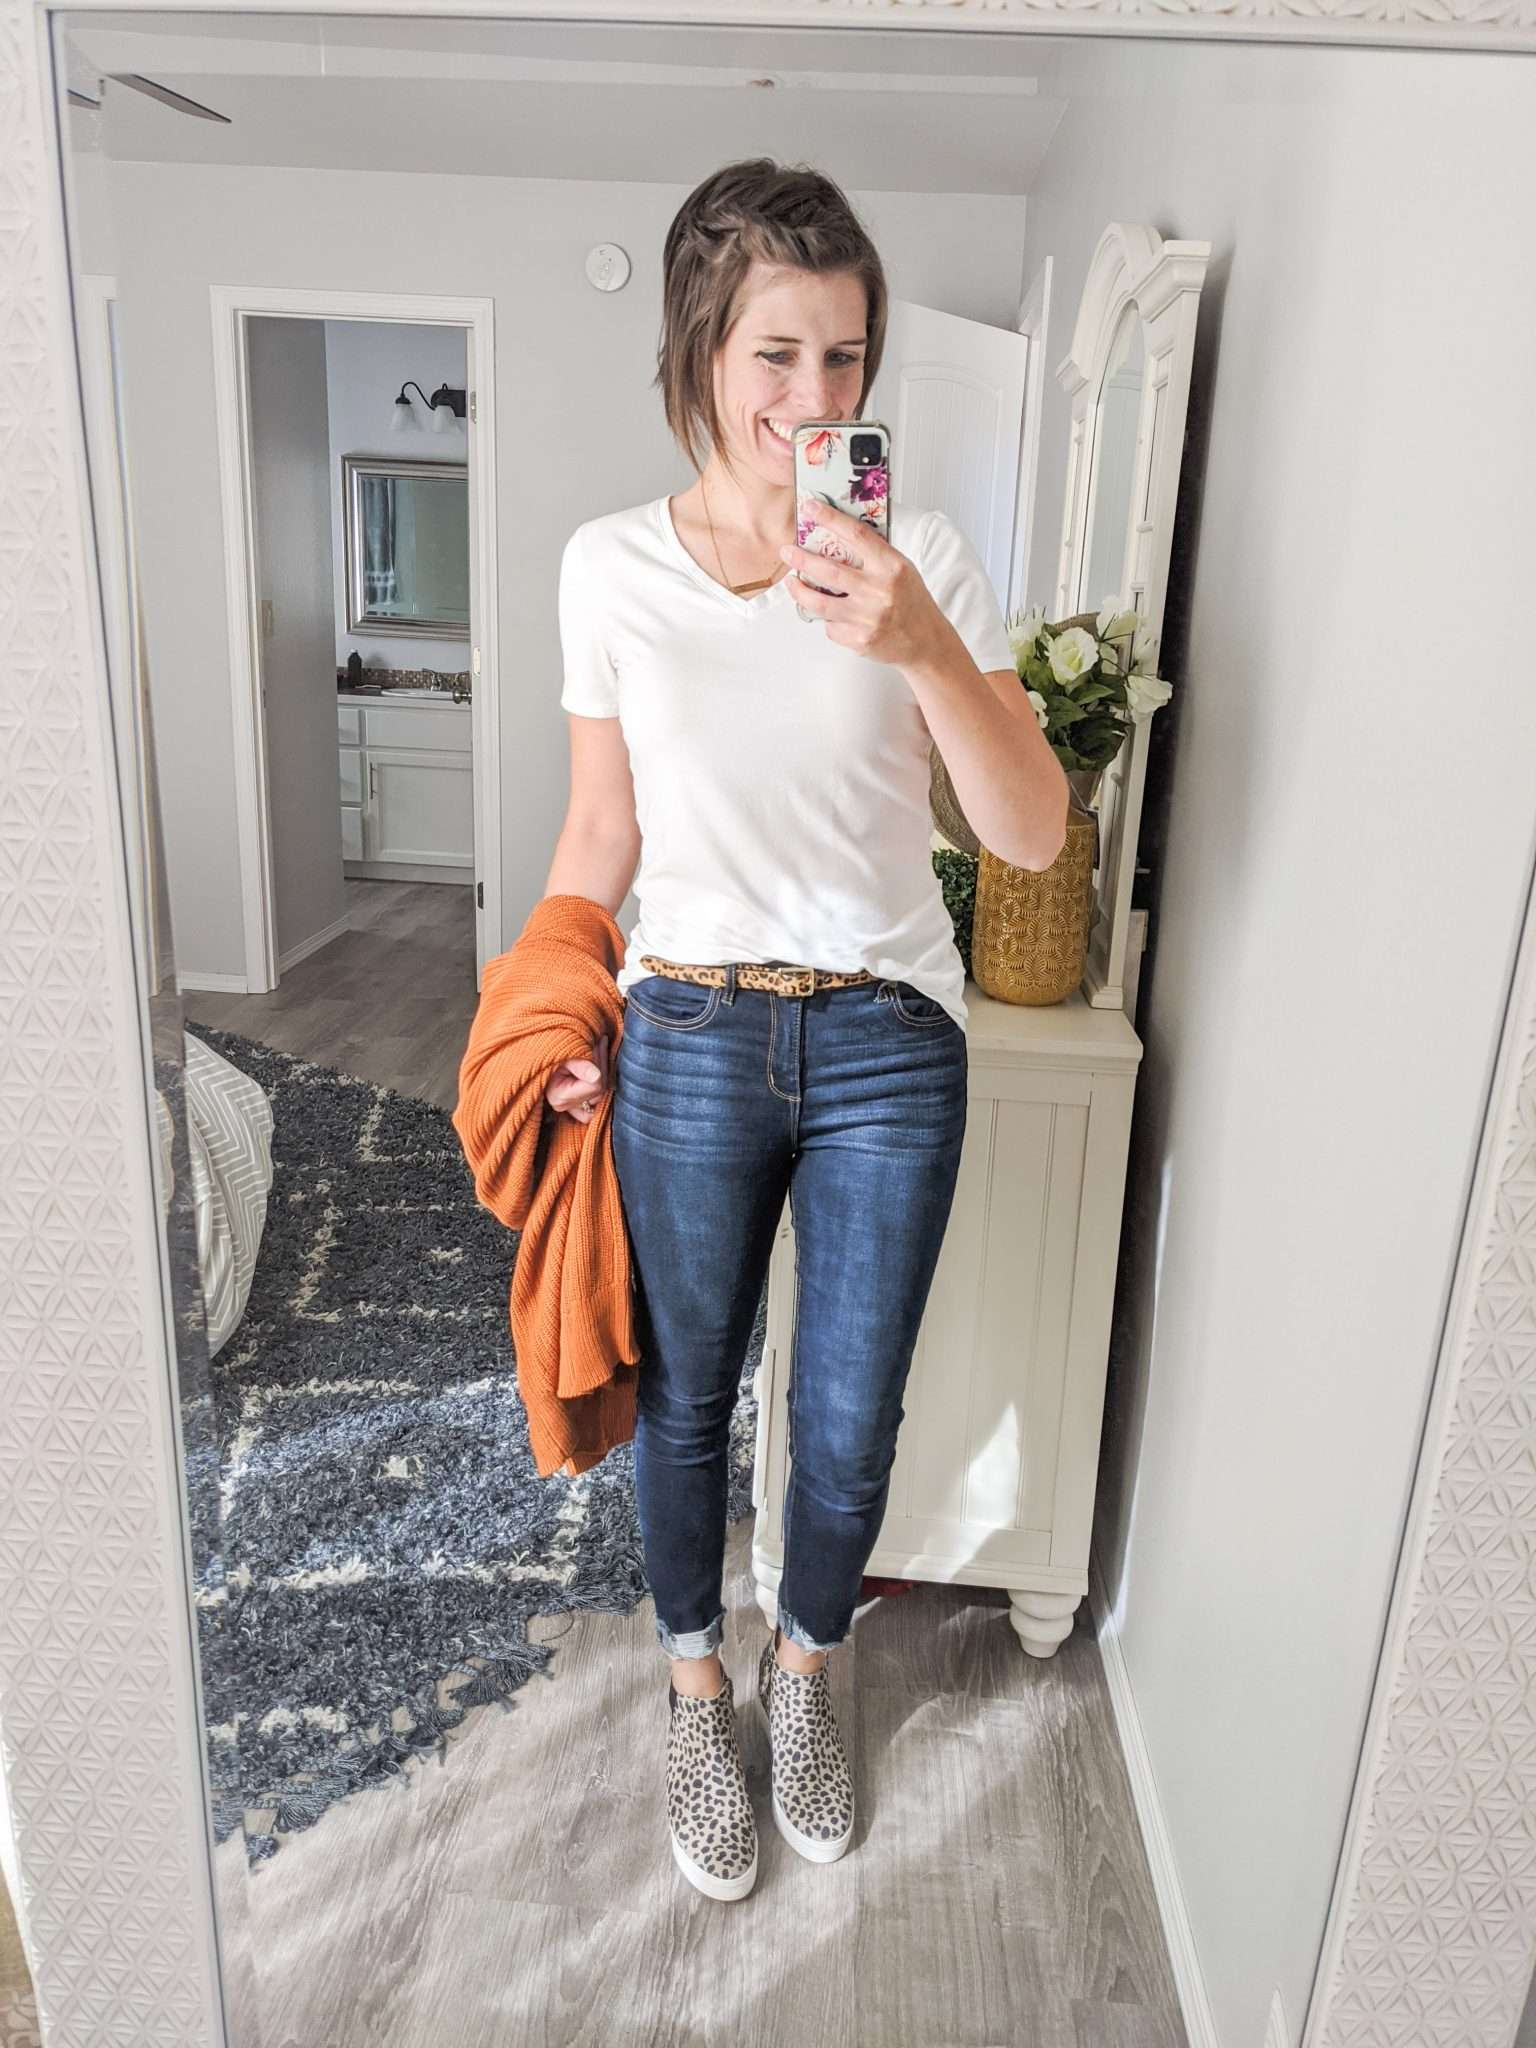 Summer to Fall transition outfits - How to transition summer clothes to fall - Fall-colored cardigans and leopard sneakers